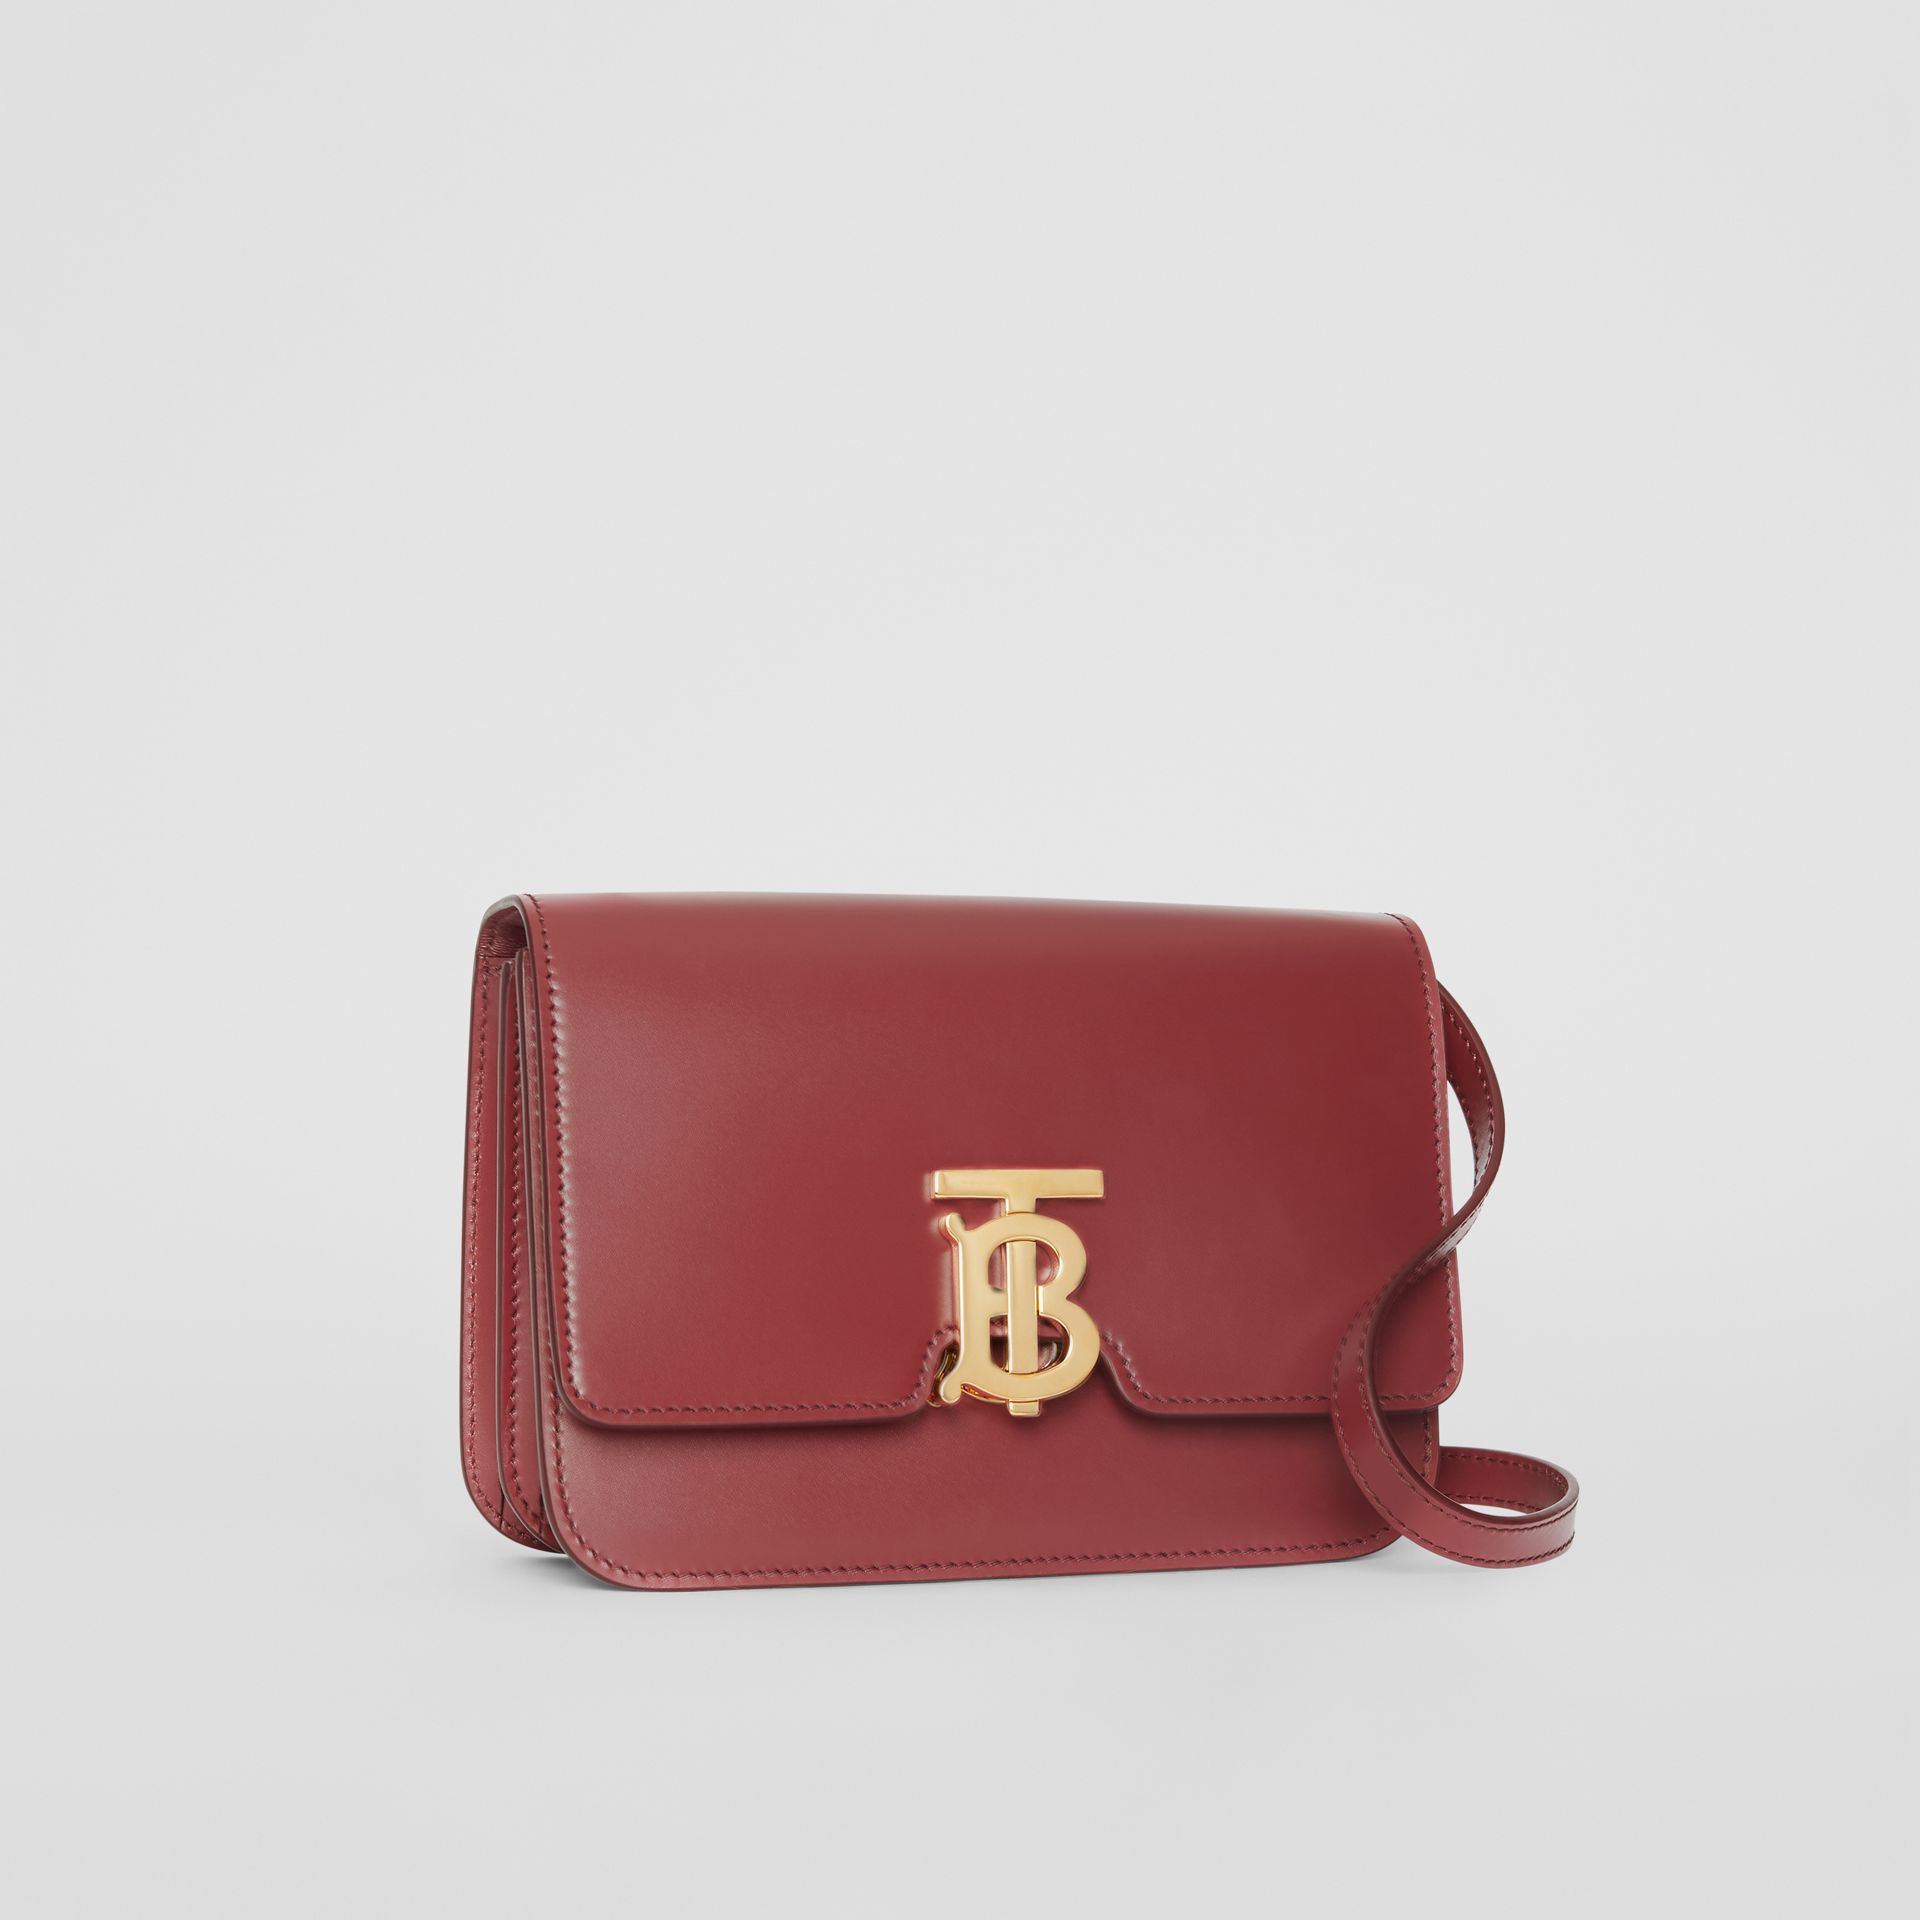 Small Leather TB Bag in Crimson - Women | Burberry Singapore - gallery image 6